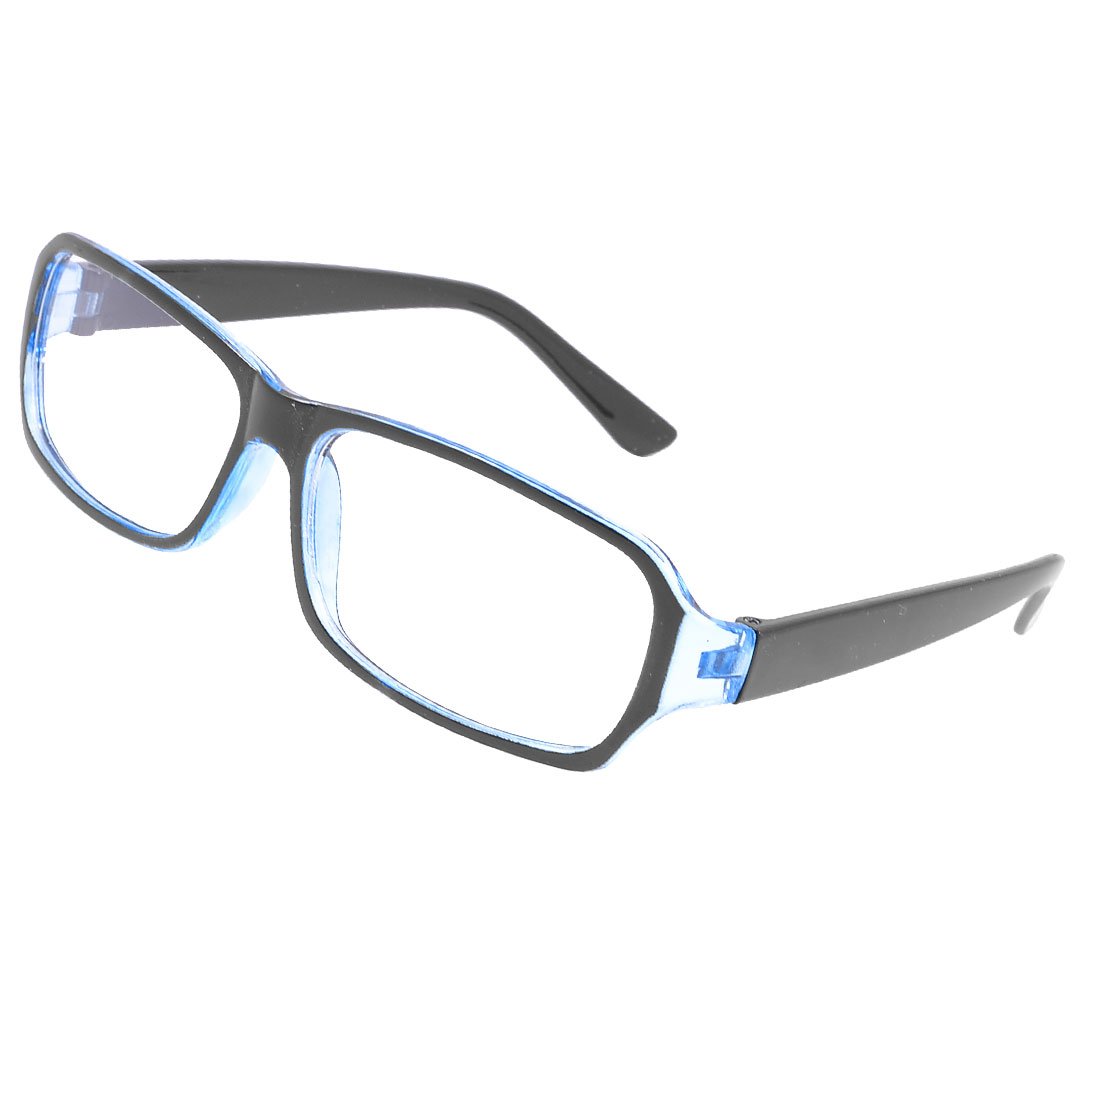 Lady Men Full Rim Frame Rectangle Lens Plain Glasses Eyeglasses Black Light Blue